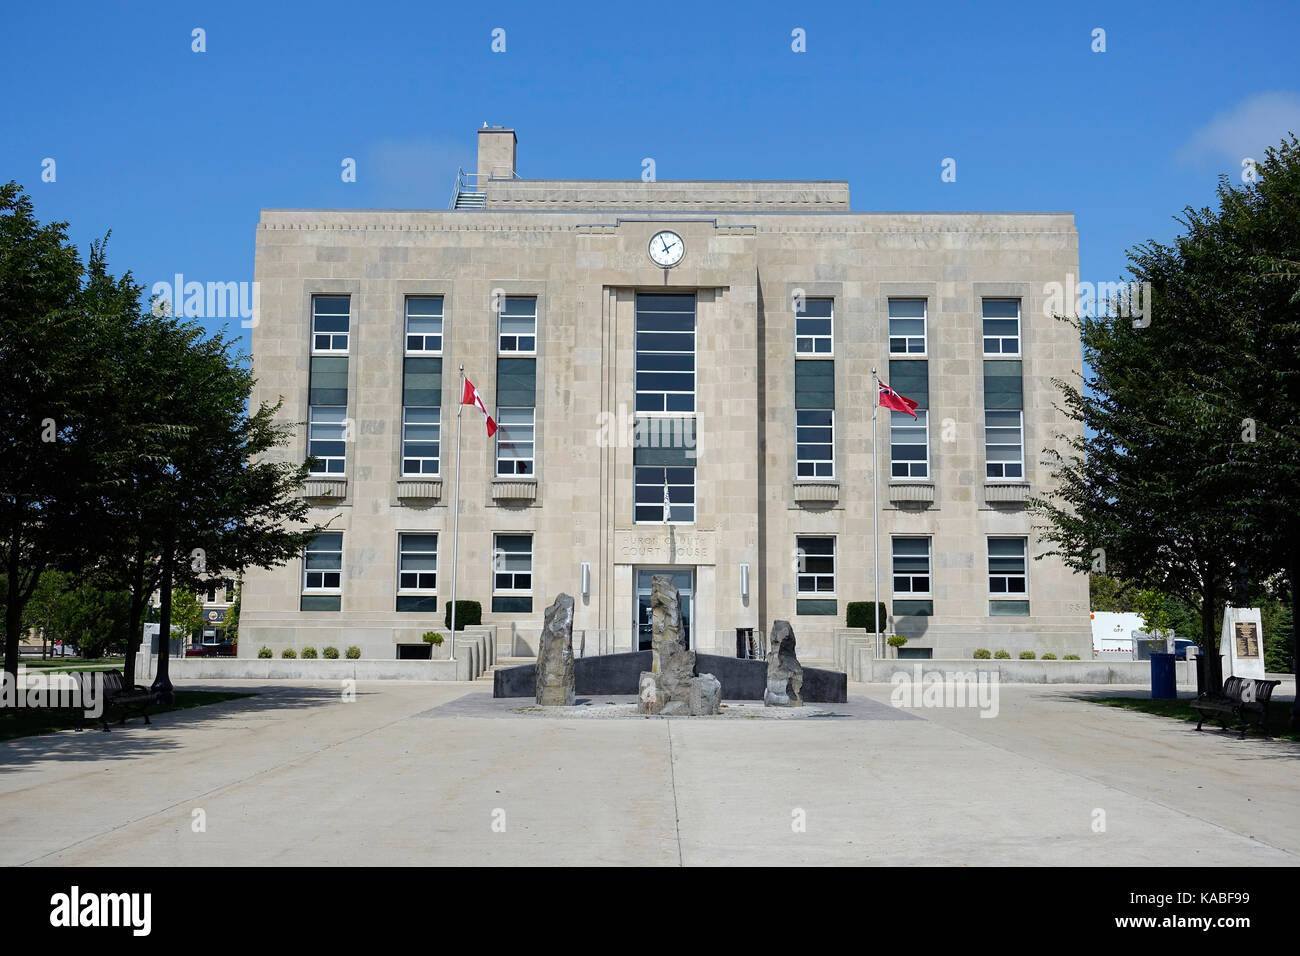 Huron County Courthouse Goderich, Ontario, Canada Voted The Prettiest Town In Canada And Home To The Largest Salt - Stock Image